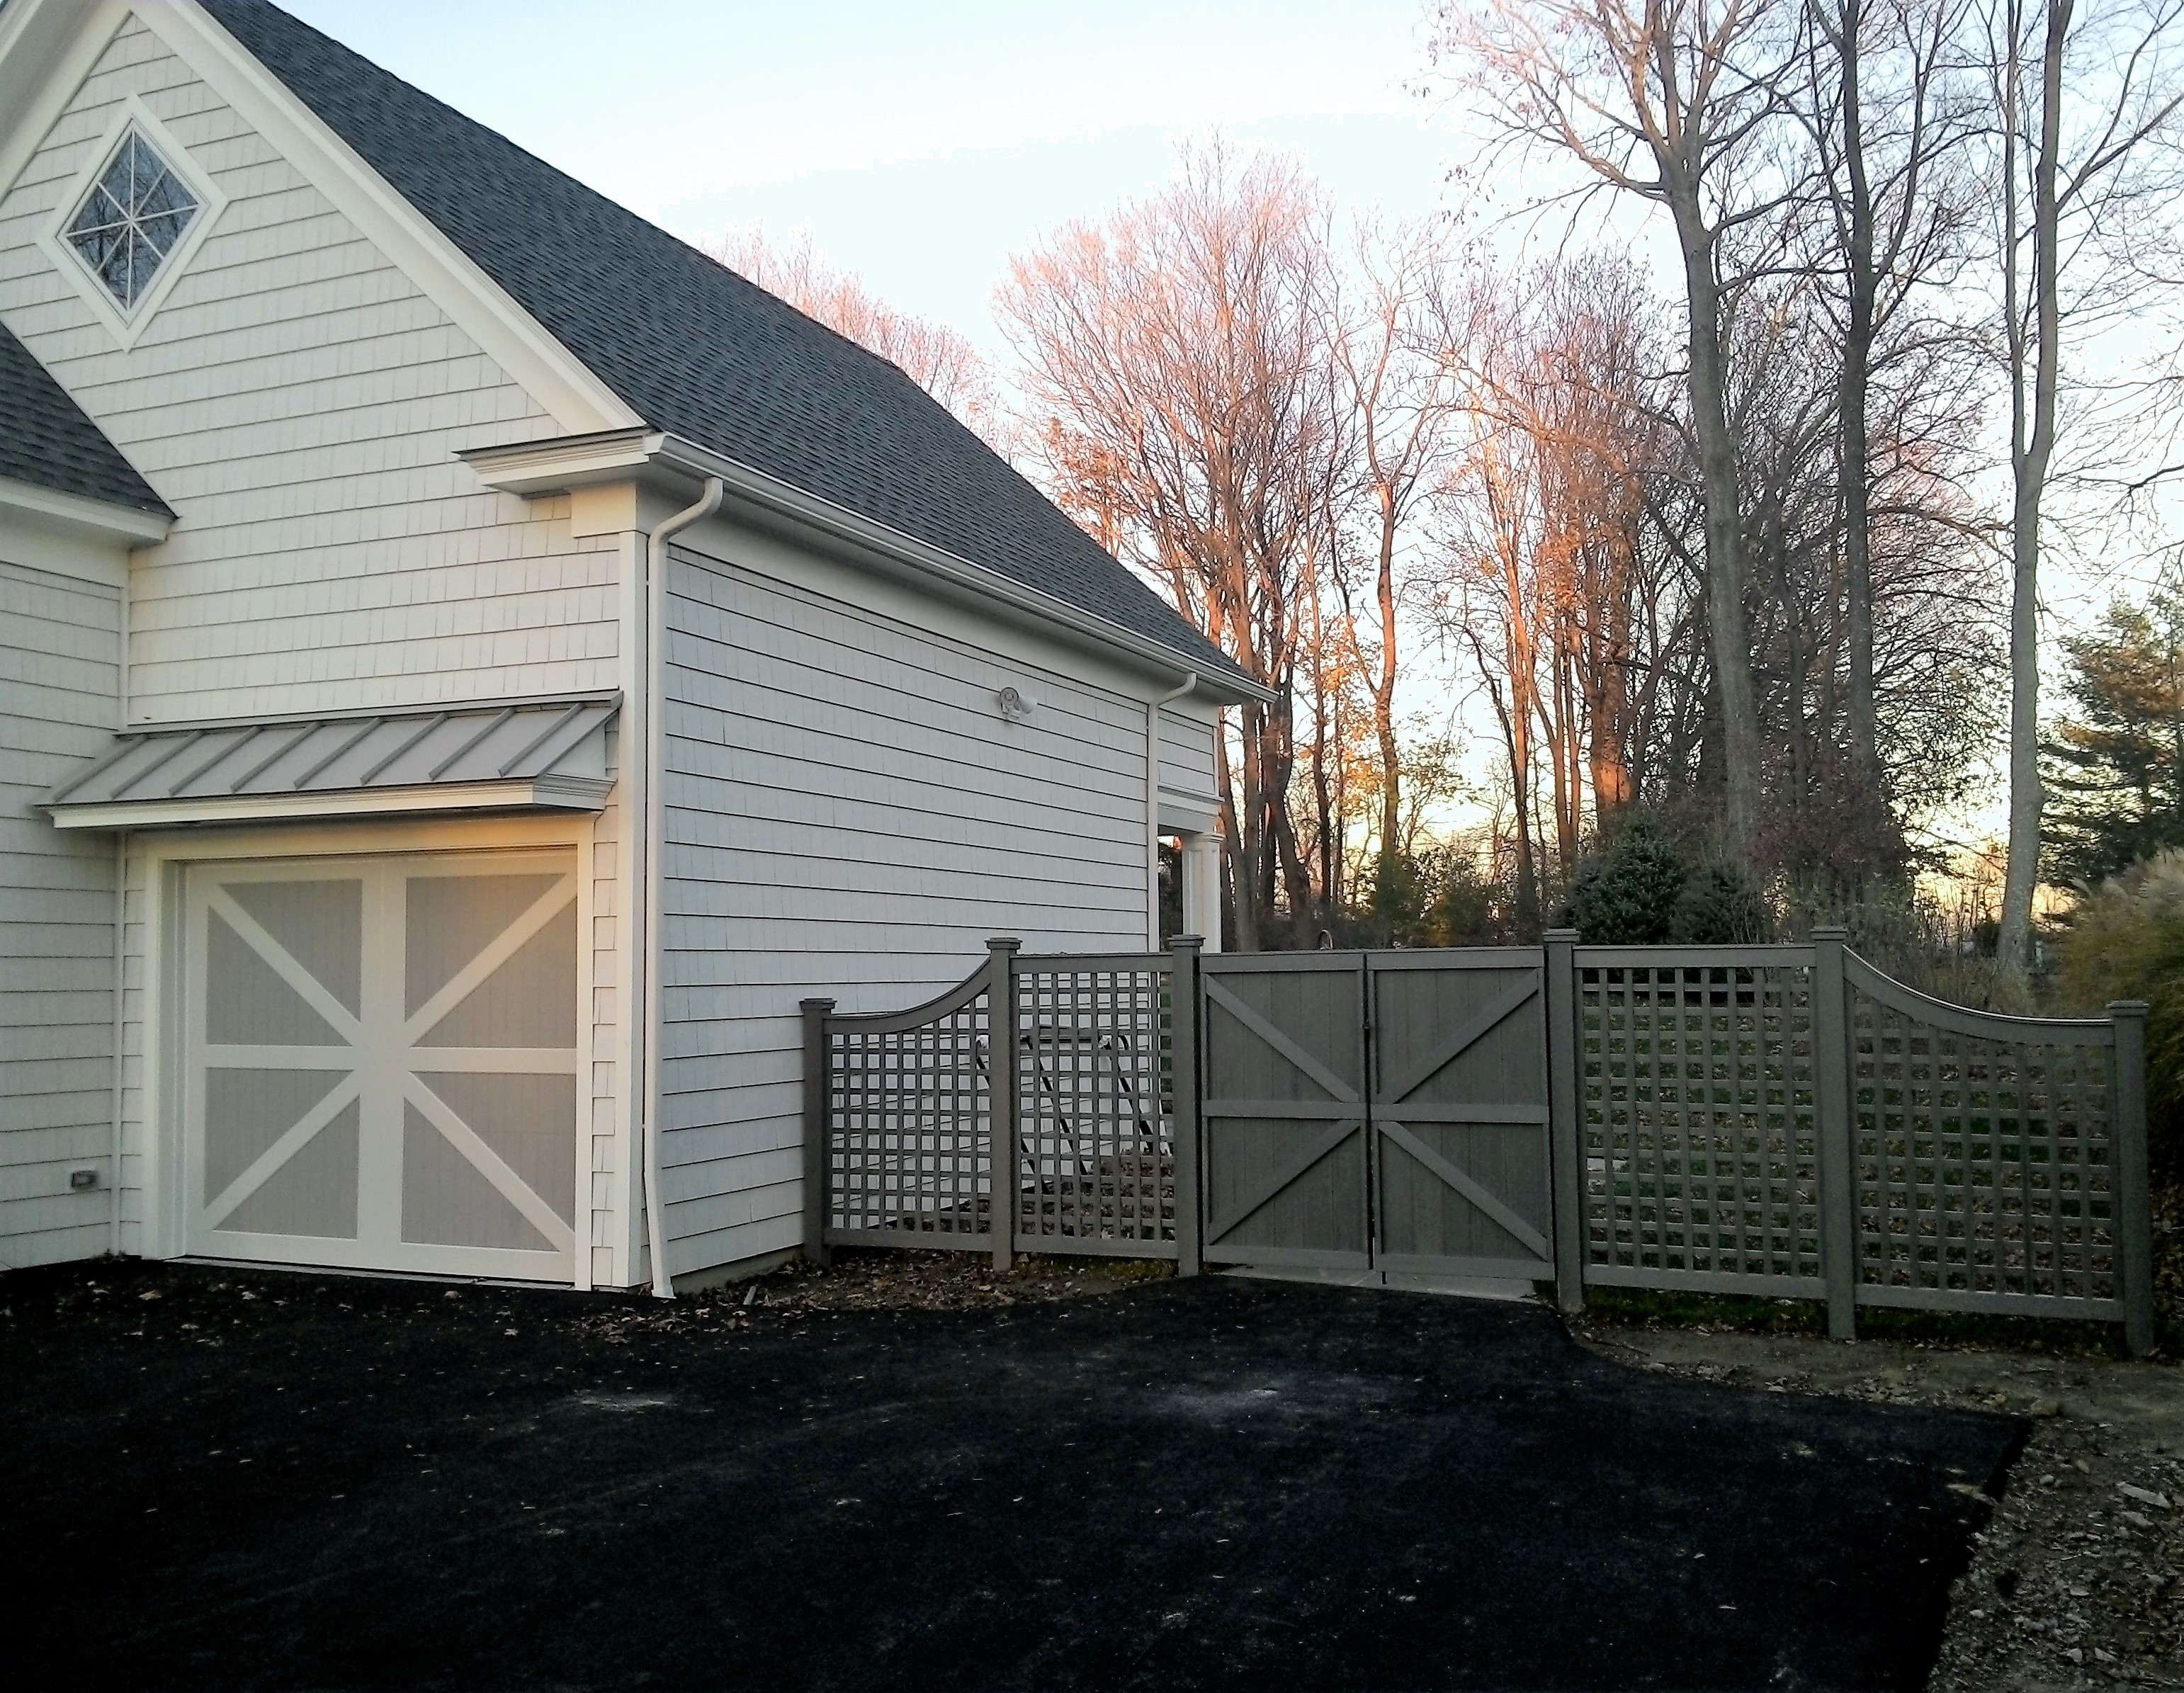 Green Trellis and Gate